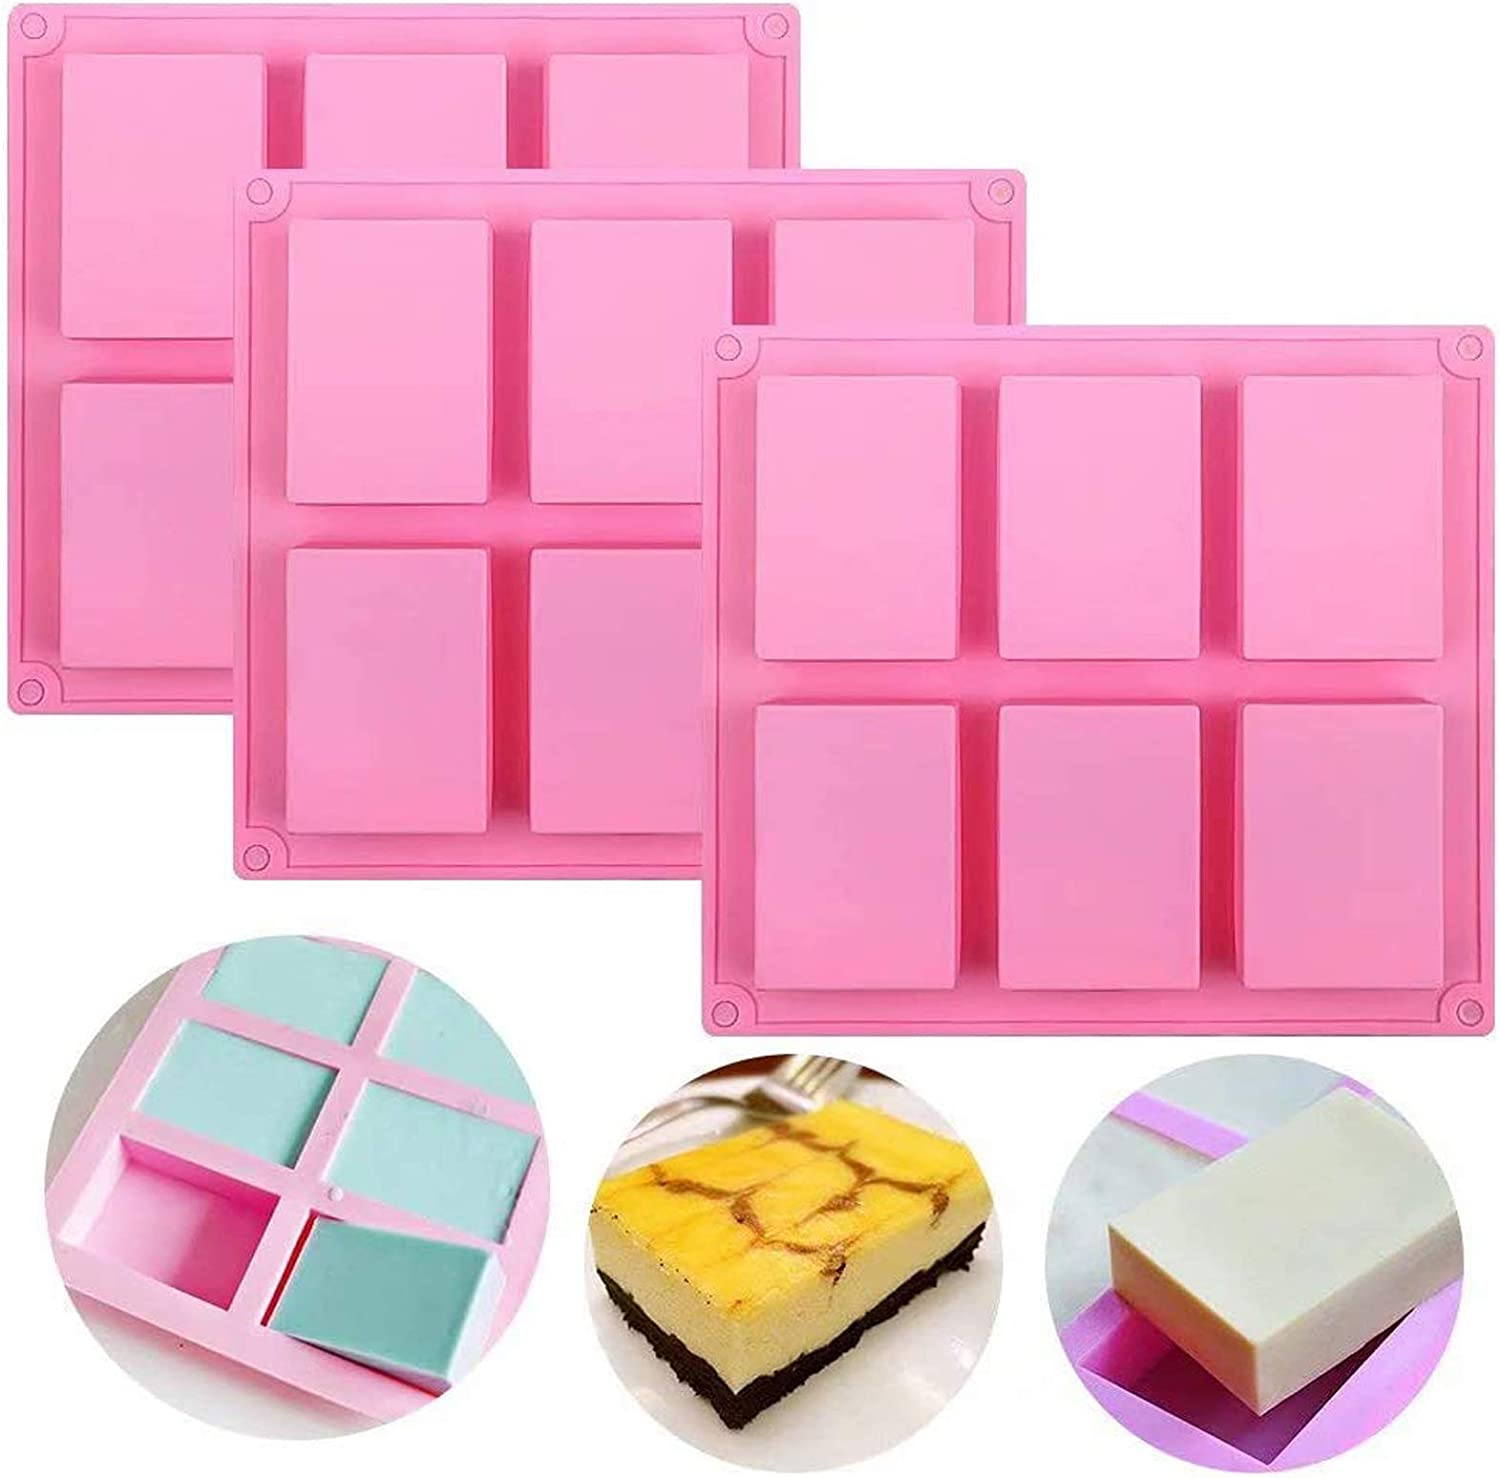 Silicone Soap Molds Set Selling rankings of 3 Cavities DIY Handmade Selling Mould 6